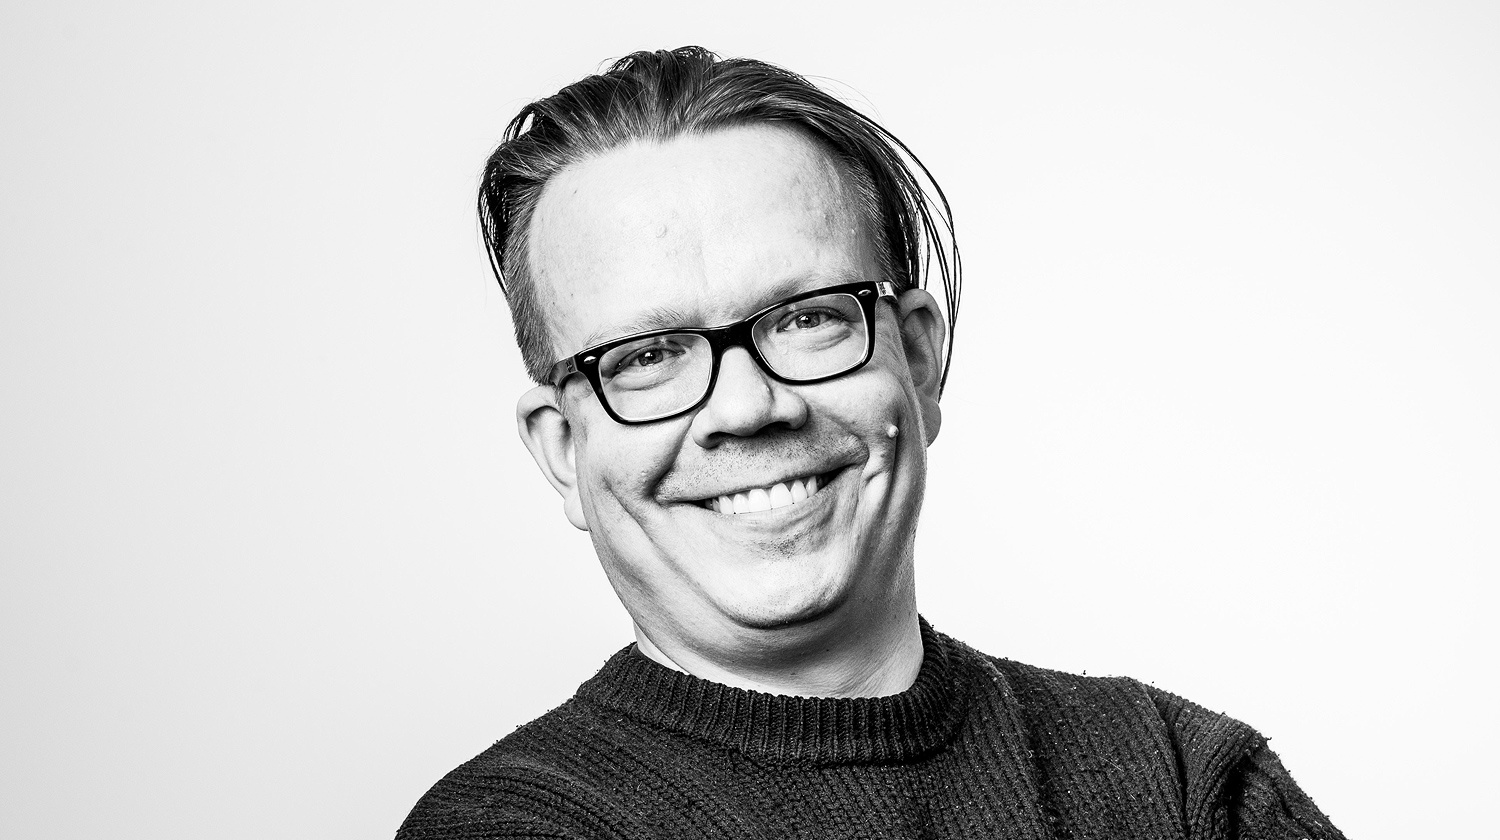 Arttu | Communications Lead